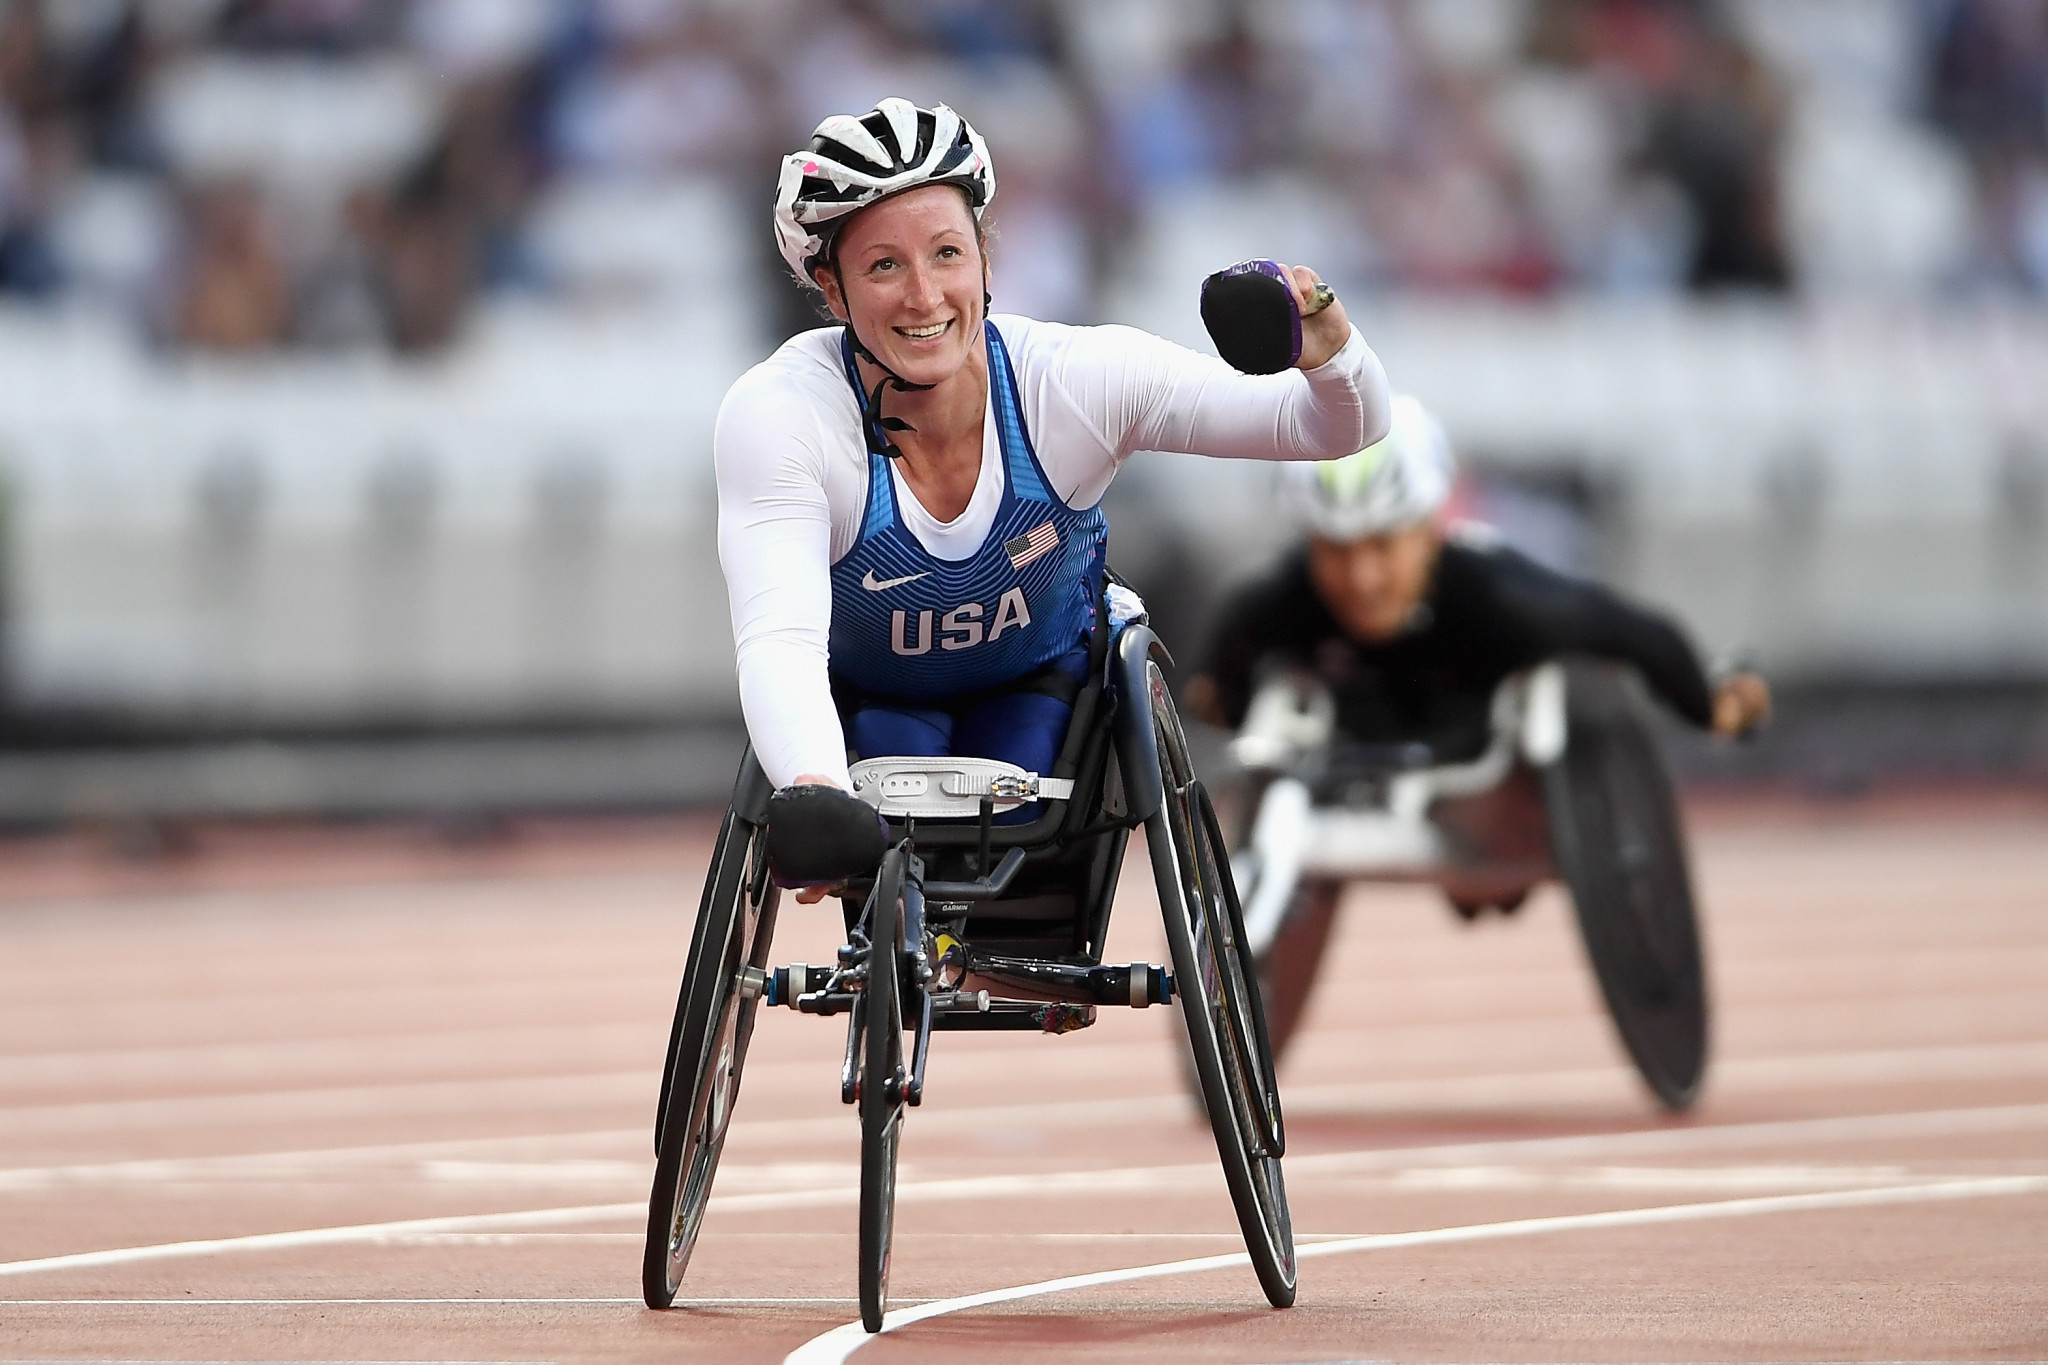 Tatyana McFadden is the only athlete nominated in either category for a performance outside of the 2018 Winter Paralympic Games ©Getty Images